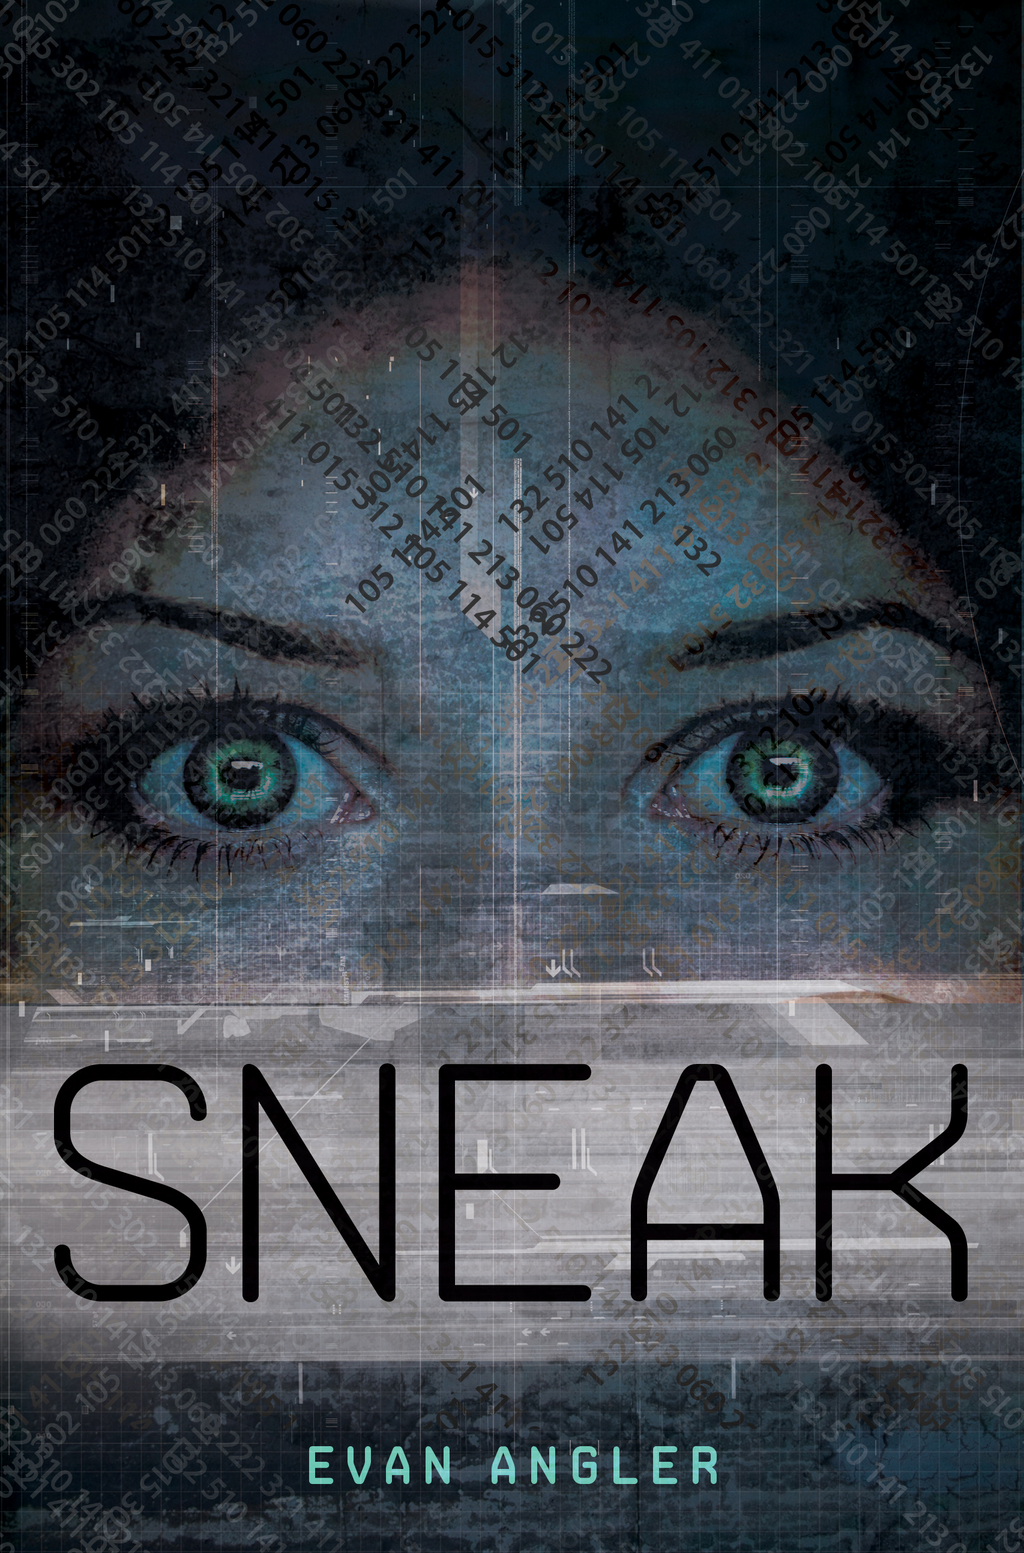 Sneak By: Evan Angler